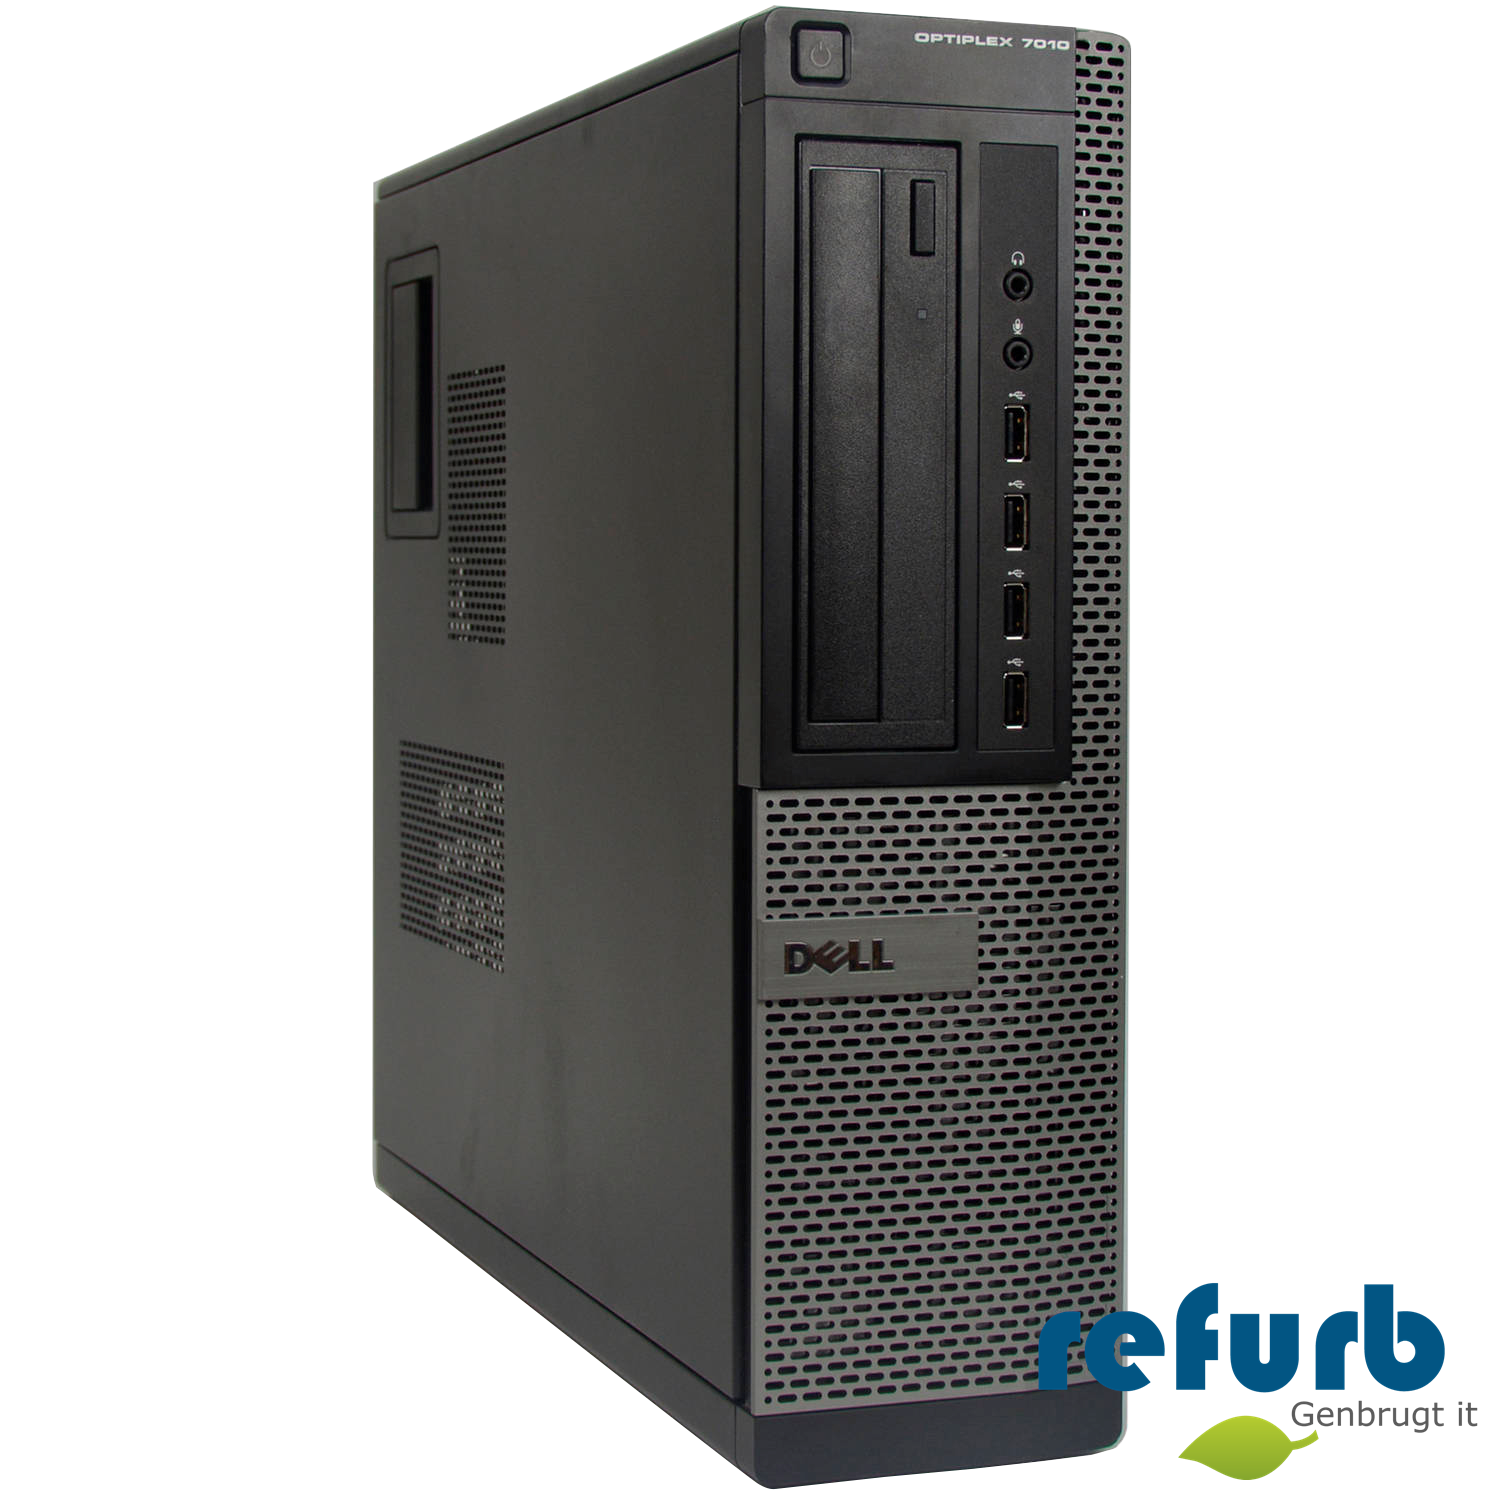 Dell optiplex 7010 dt fra Dell fra refurb